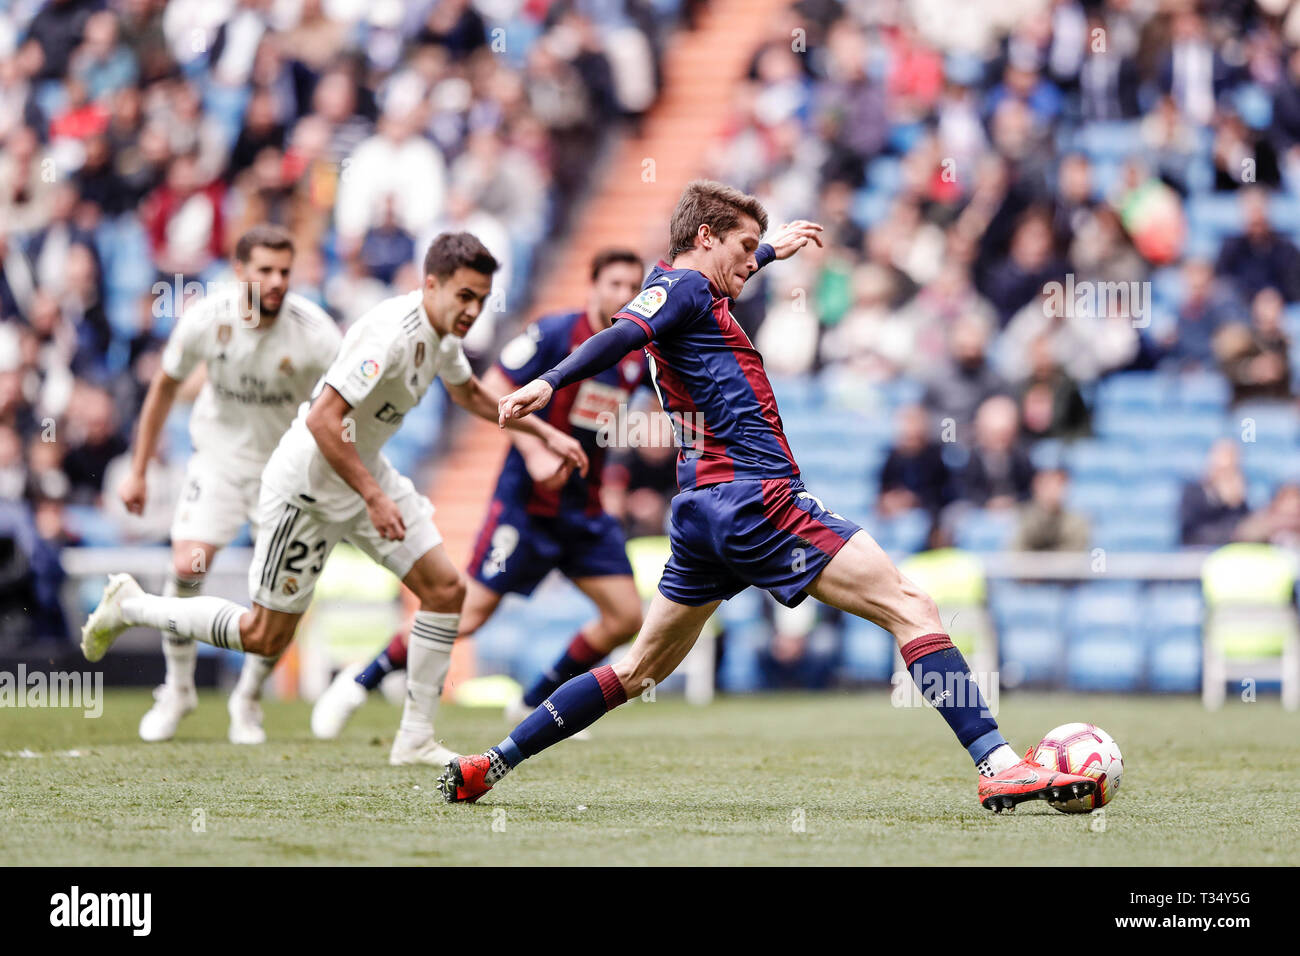 Santiago Bernabeu Madrid Spain 6th Apr 2019 La Liga Football